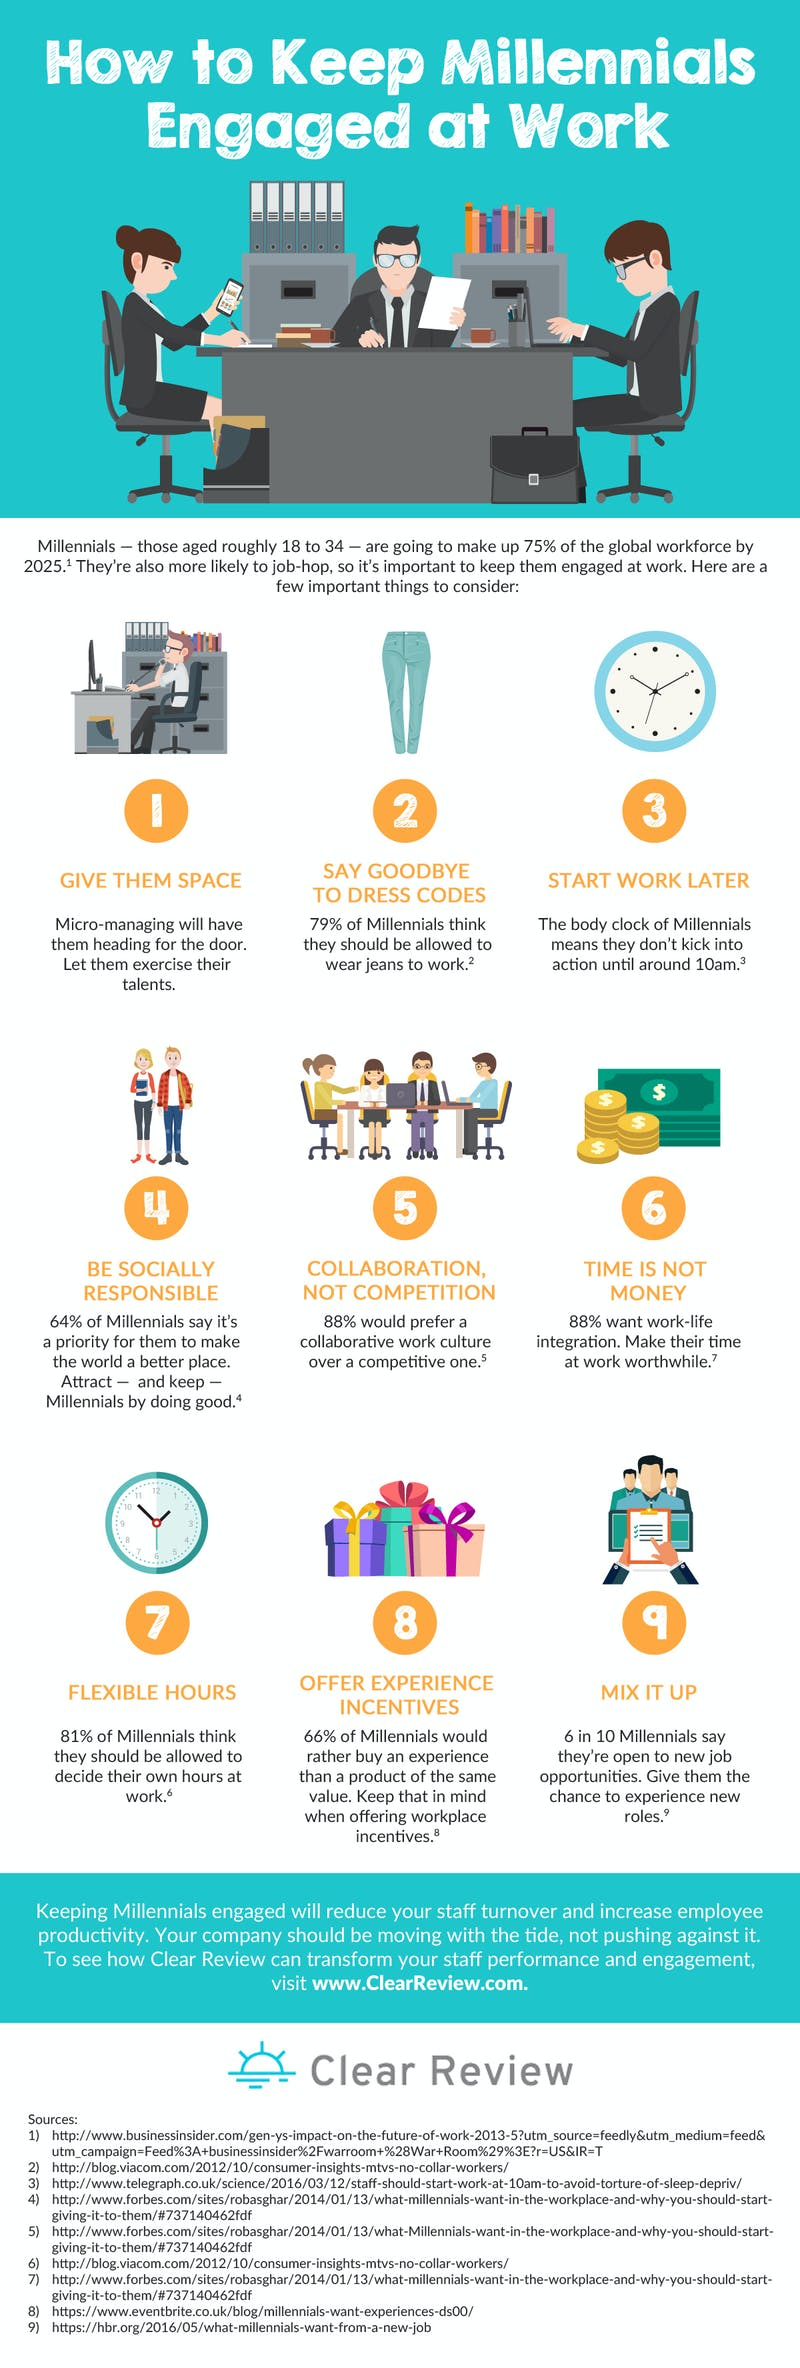 An infographic on the importance of SMART Objectives and Regular Feedback to motivate millennials at work